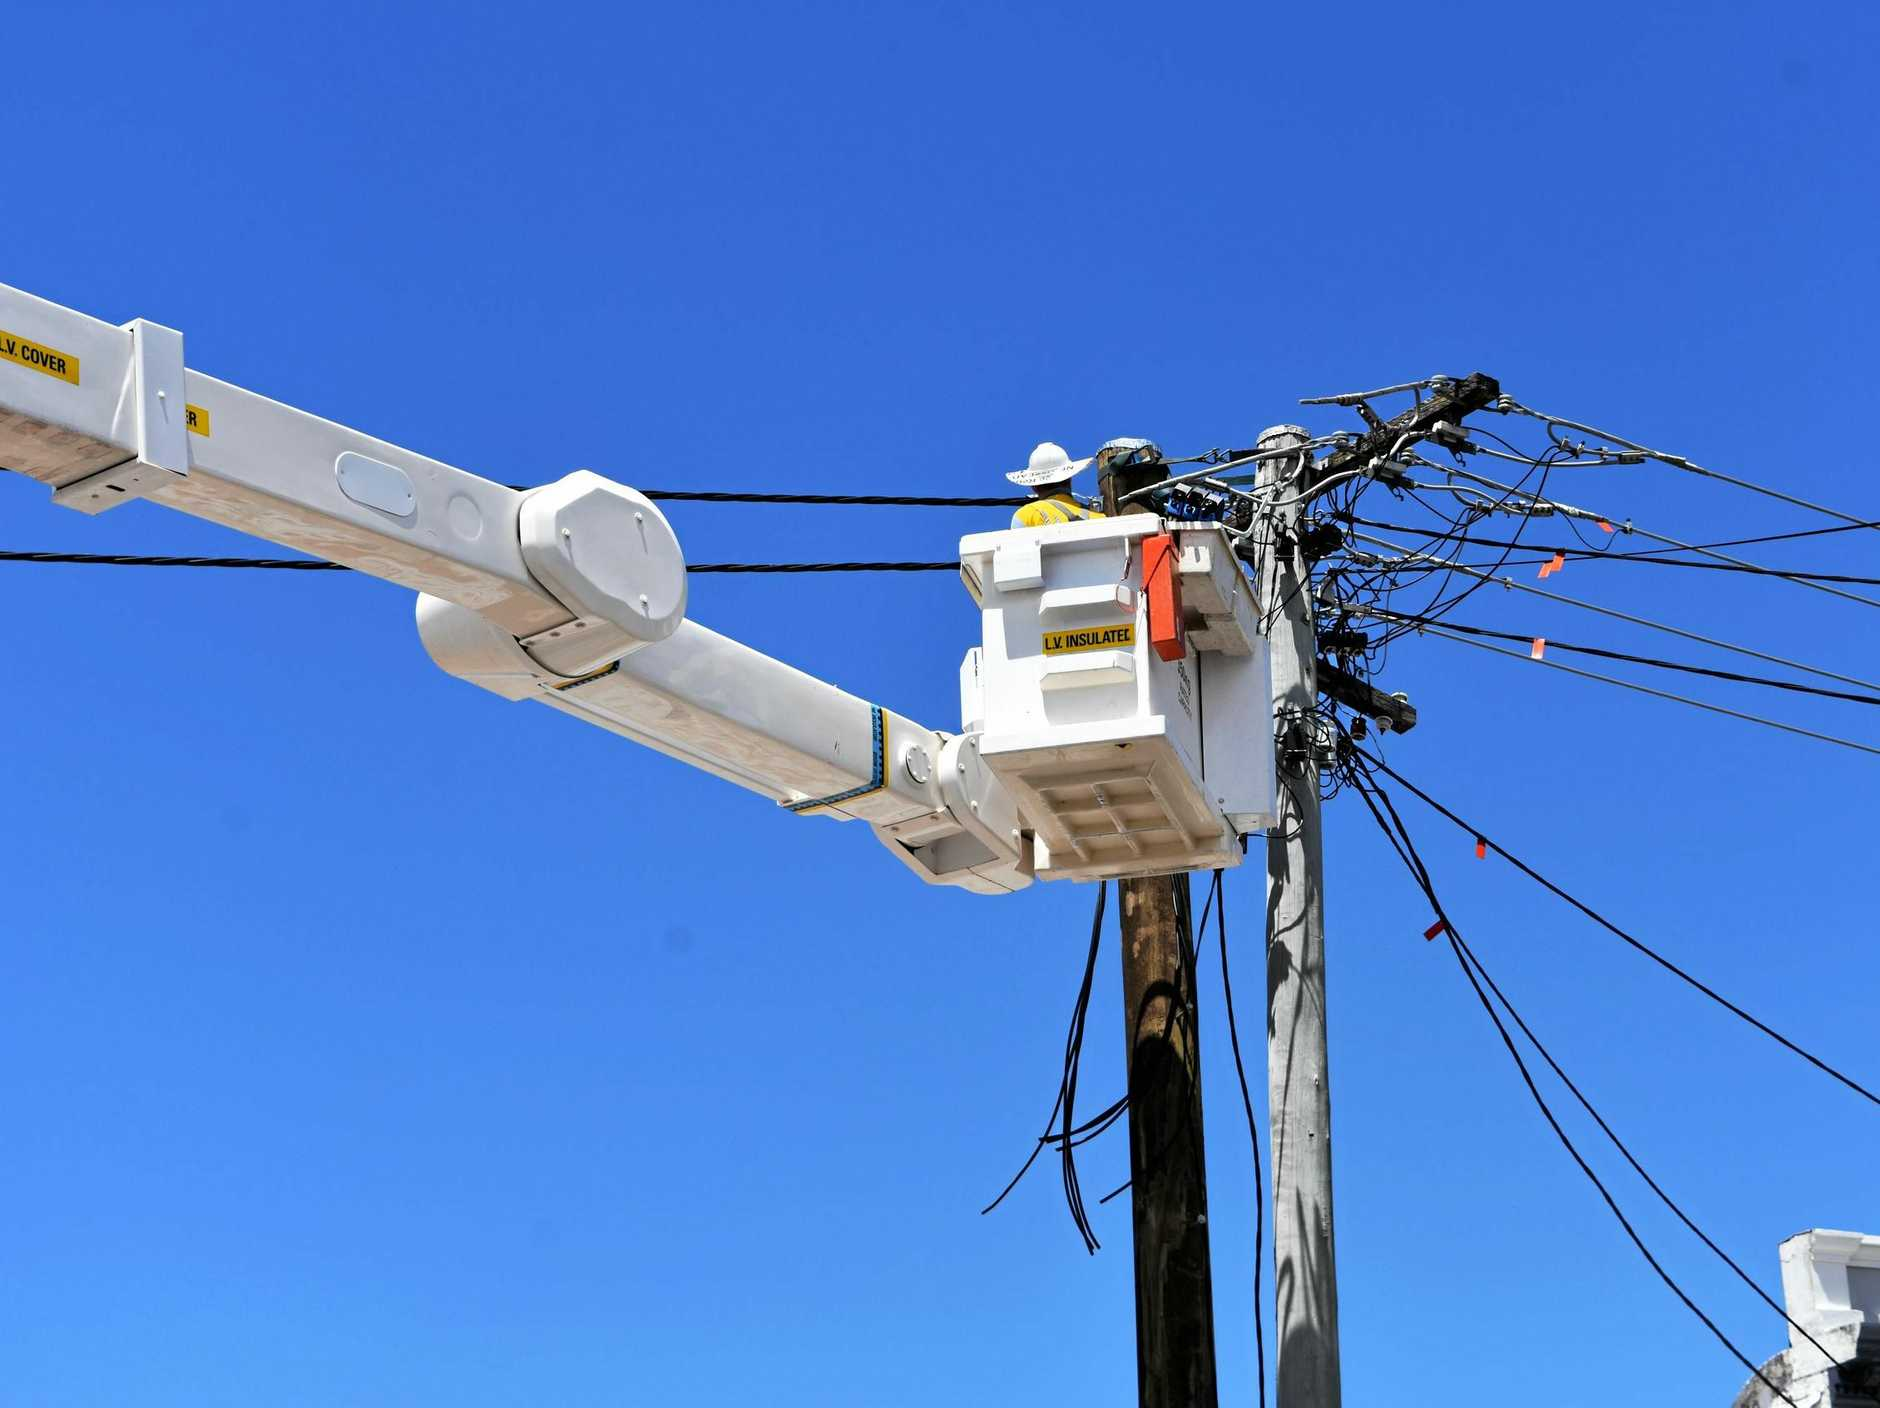 Energex replaces power lines.